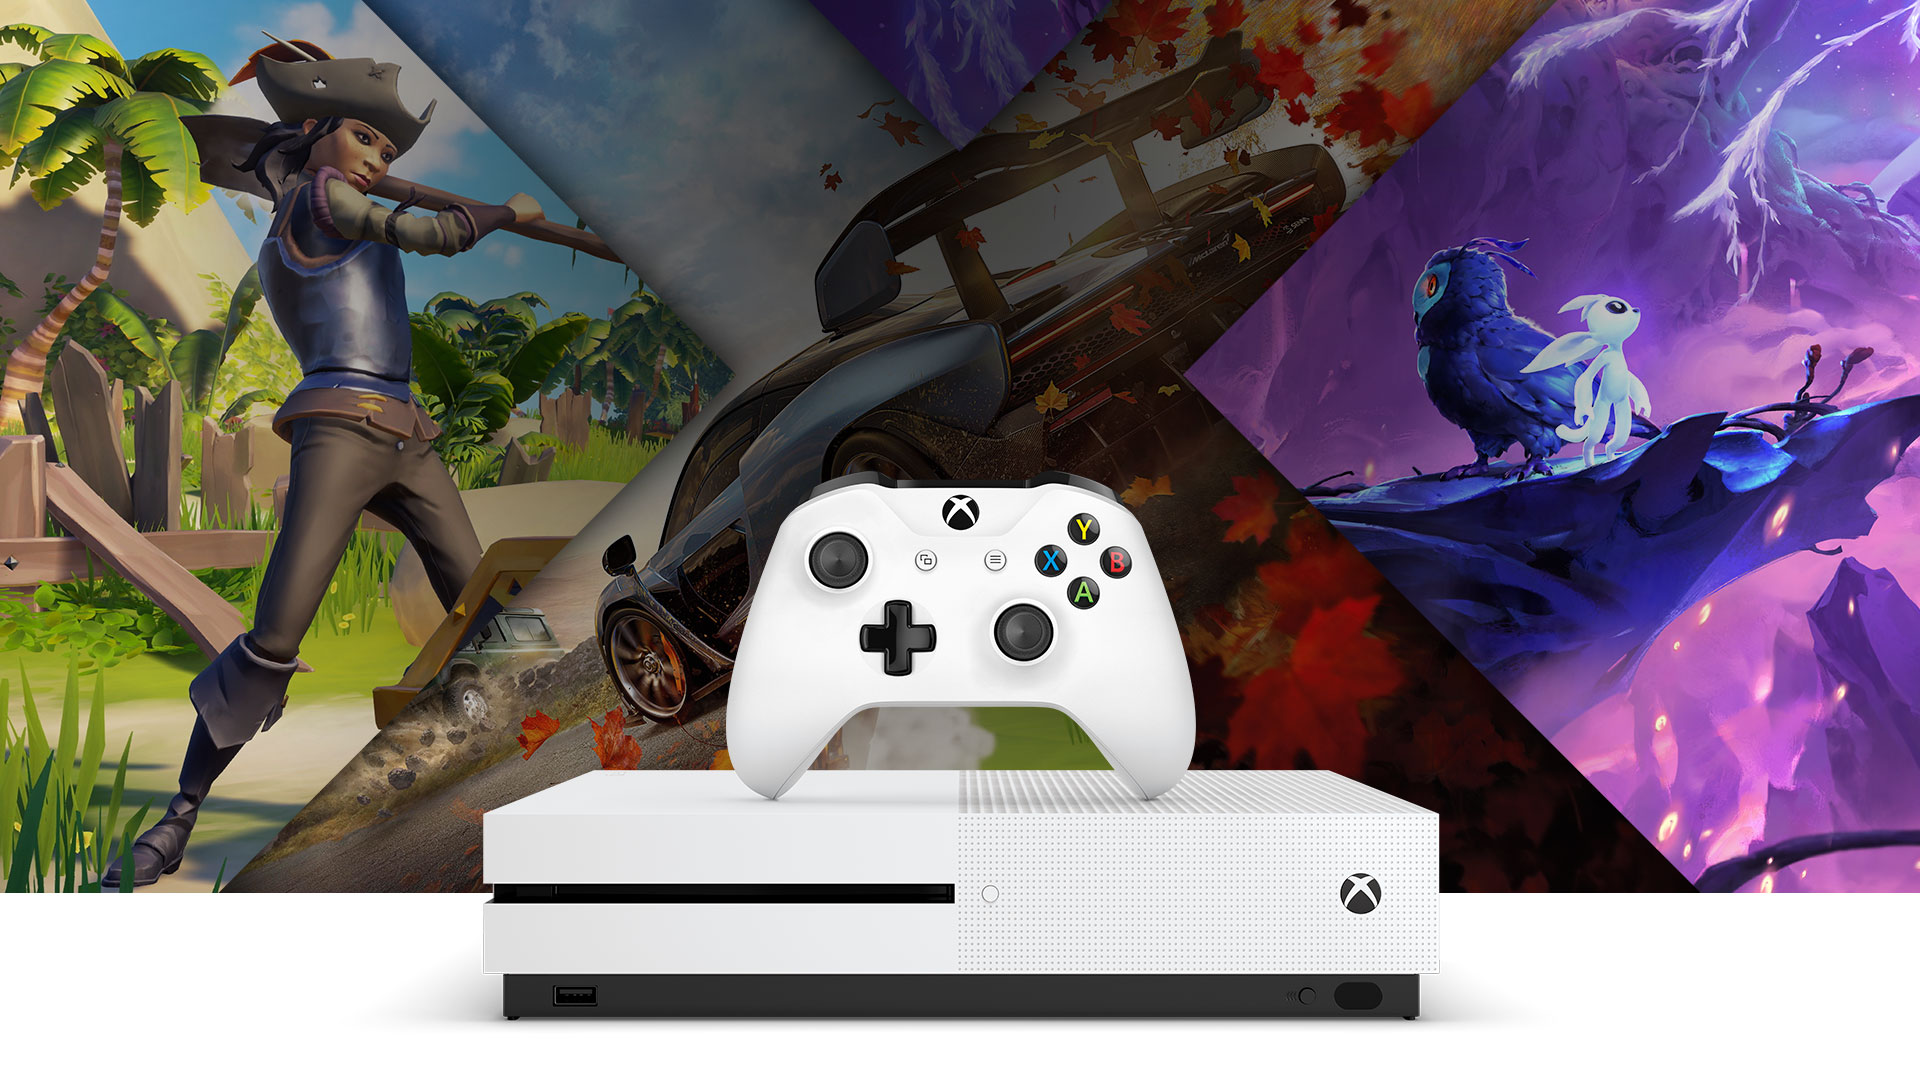 Vorderansicht der Xbox One S und des White Wireless Controllers, umgeben von Bildern von Sea of ​​Thieves, Forza Horizon 4, Ori and the Will of Wisps